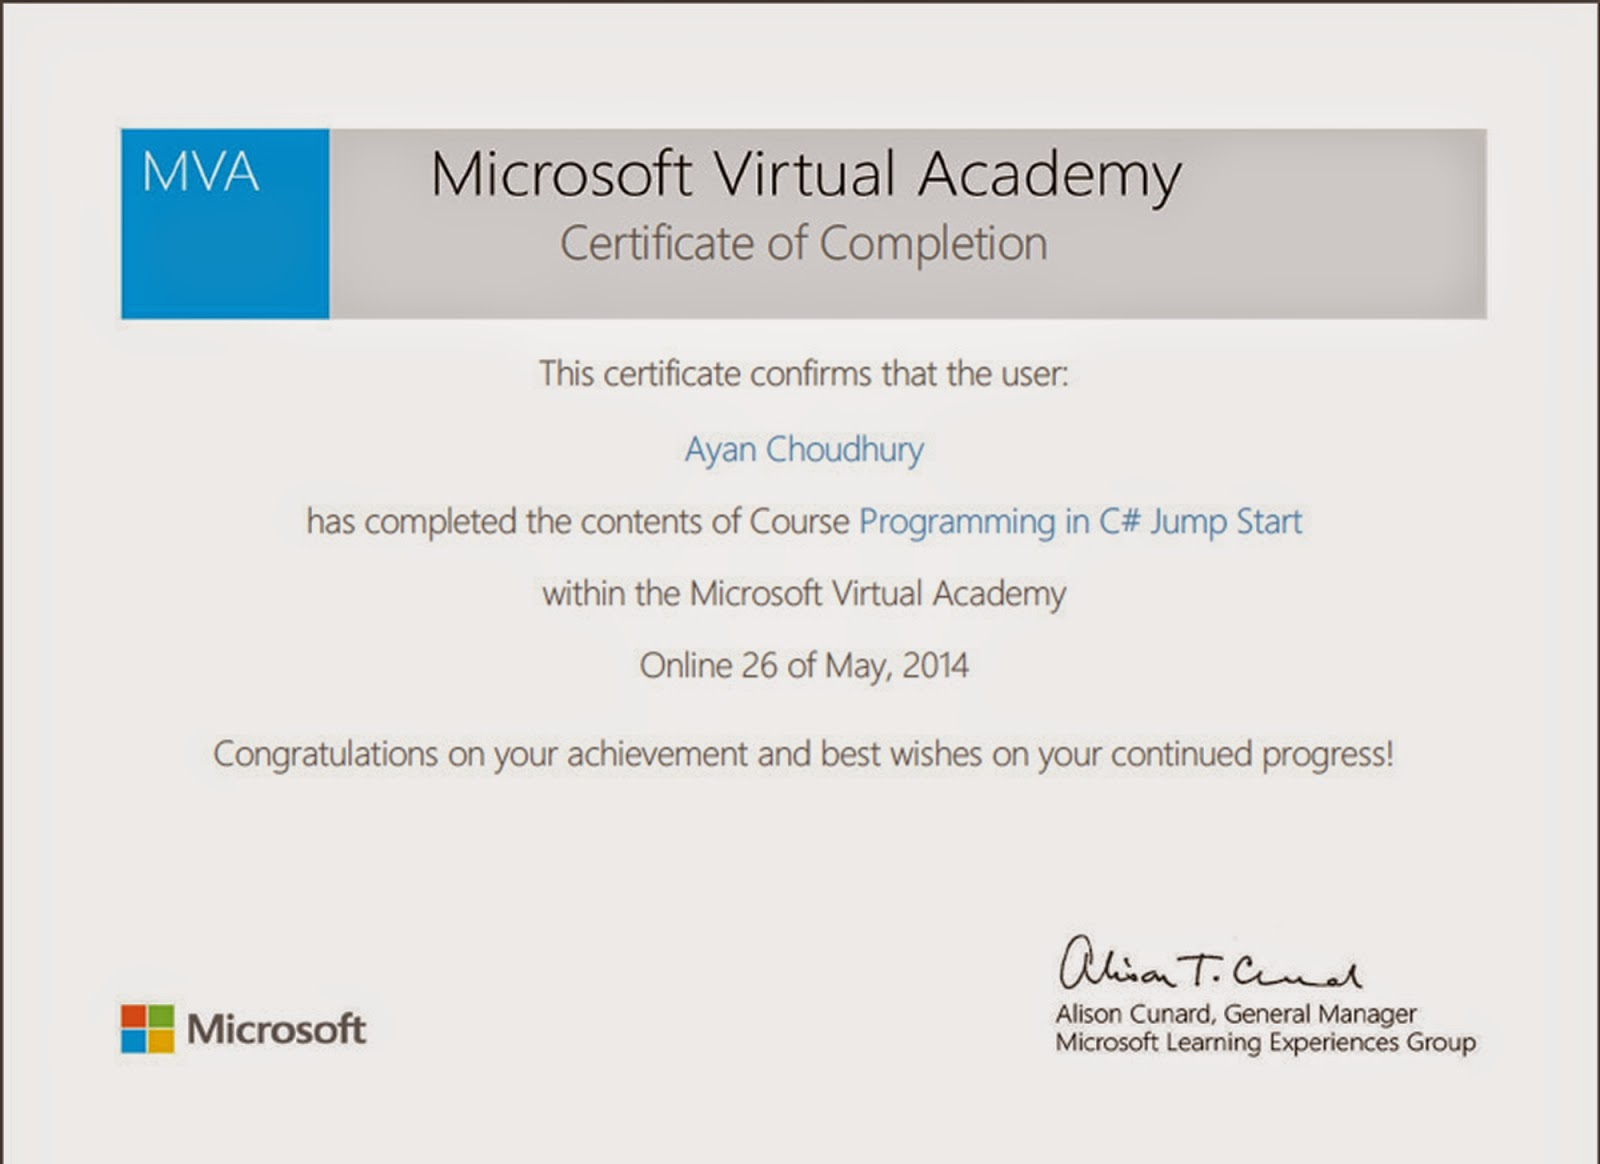 Welcome to my blog ayan choudhury microsoft the way it started certification from mva xflitez Gallery